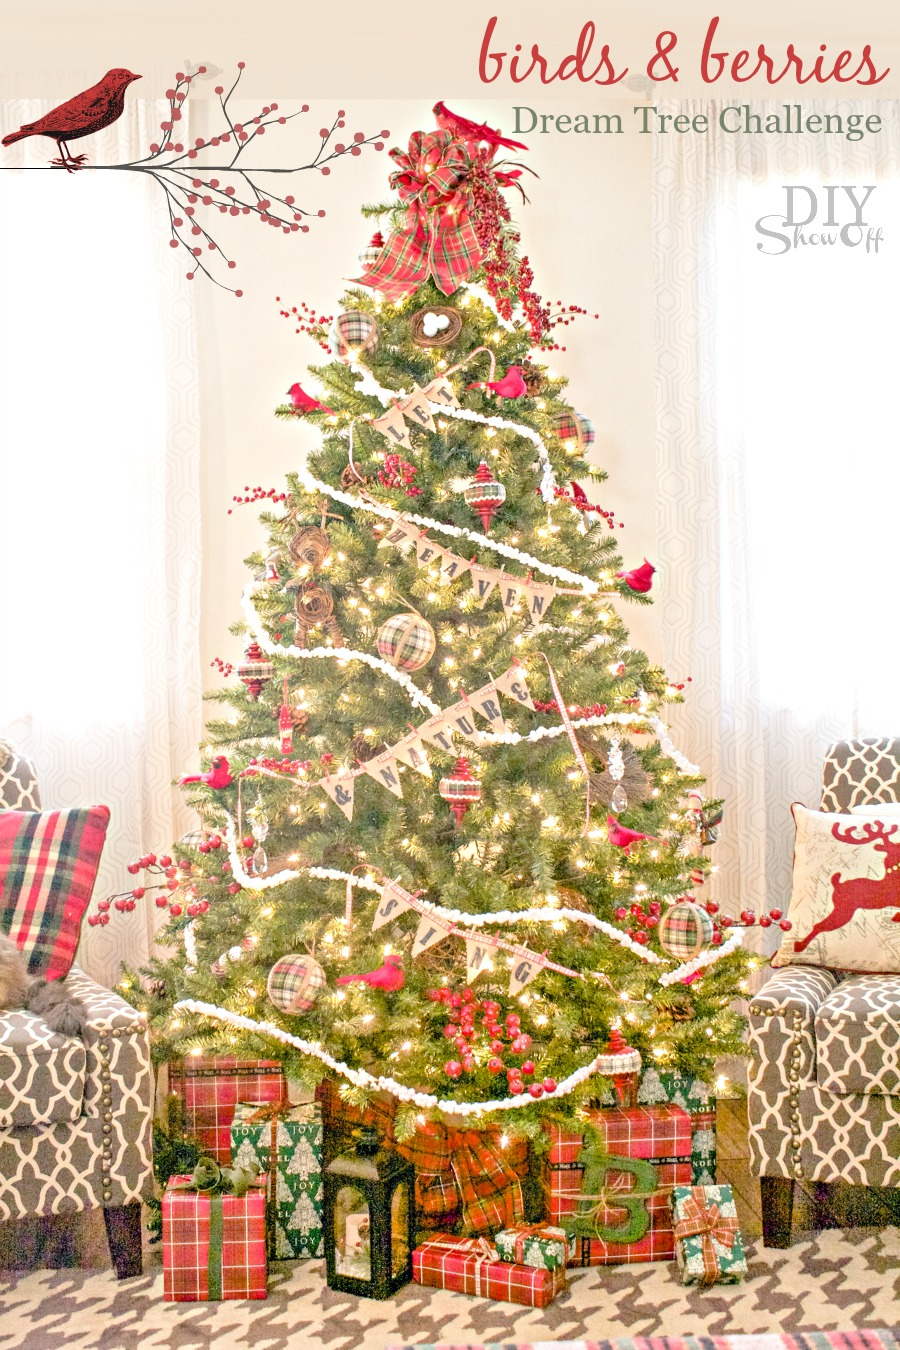 the michaels dream tree challenge mission is to bring you some holiday inspiration in preparation for seasonal decorating its not too early to start - Christmas Tree Michaels